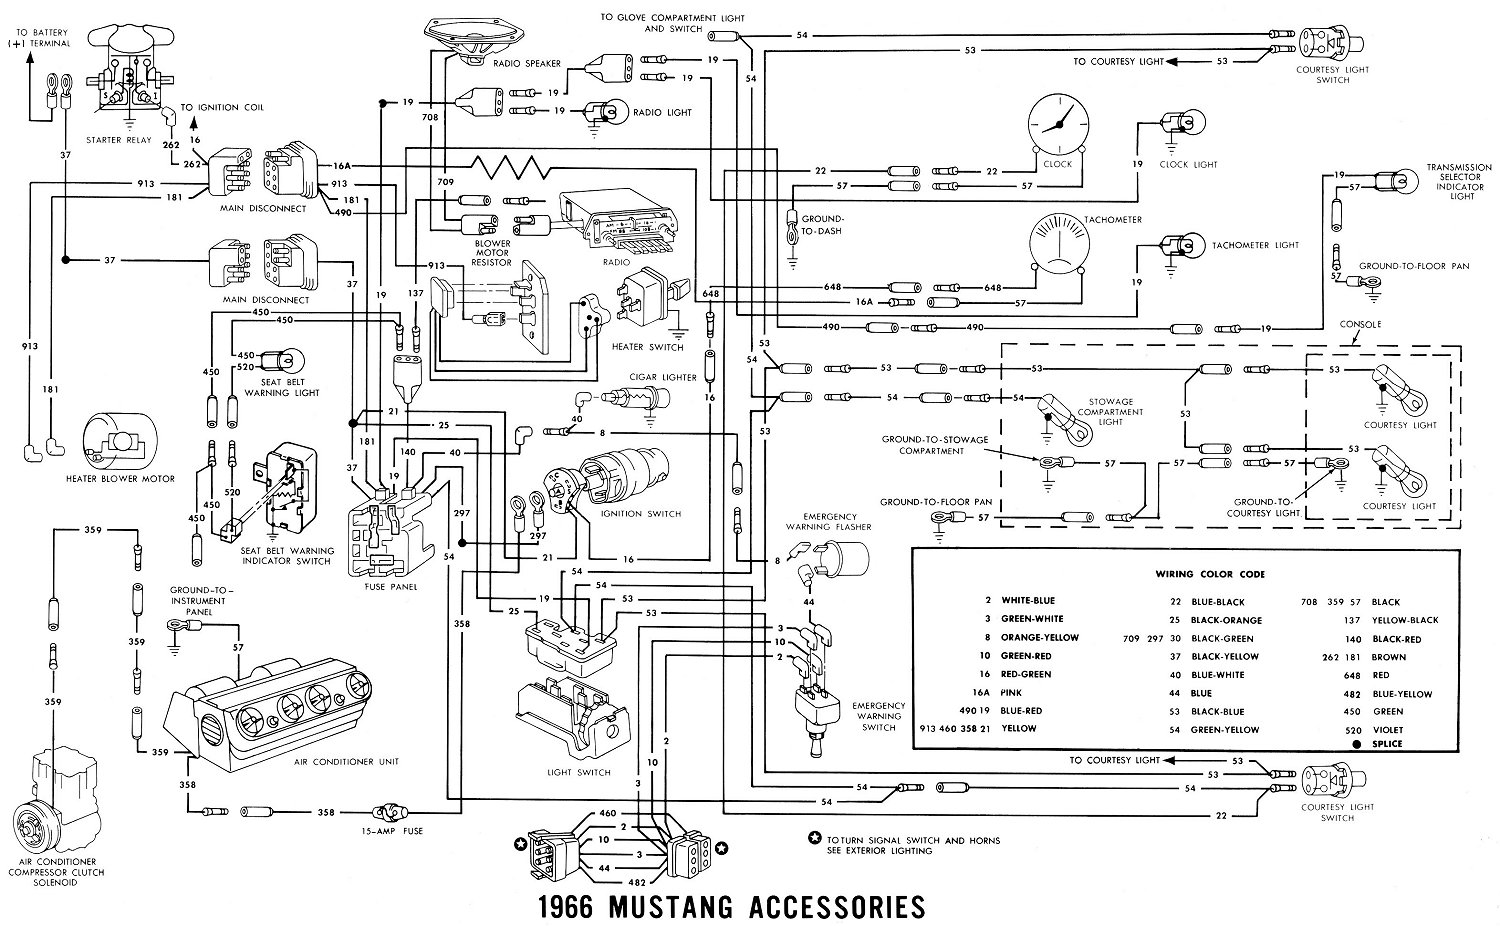 1126890 65 Ford F100 Wiring Diagrams besides Tech eremeter likewise 160851188406 furthermore Ignition Wiring Diagram 1972 Vw Beetle together with 1968 Chevy C10 Pick Up Wiring Diagram. on 70 chevelle fuel gauge wiring diagram